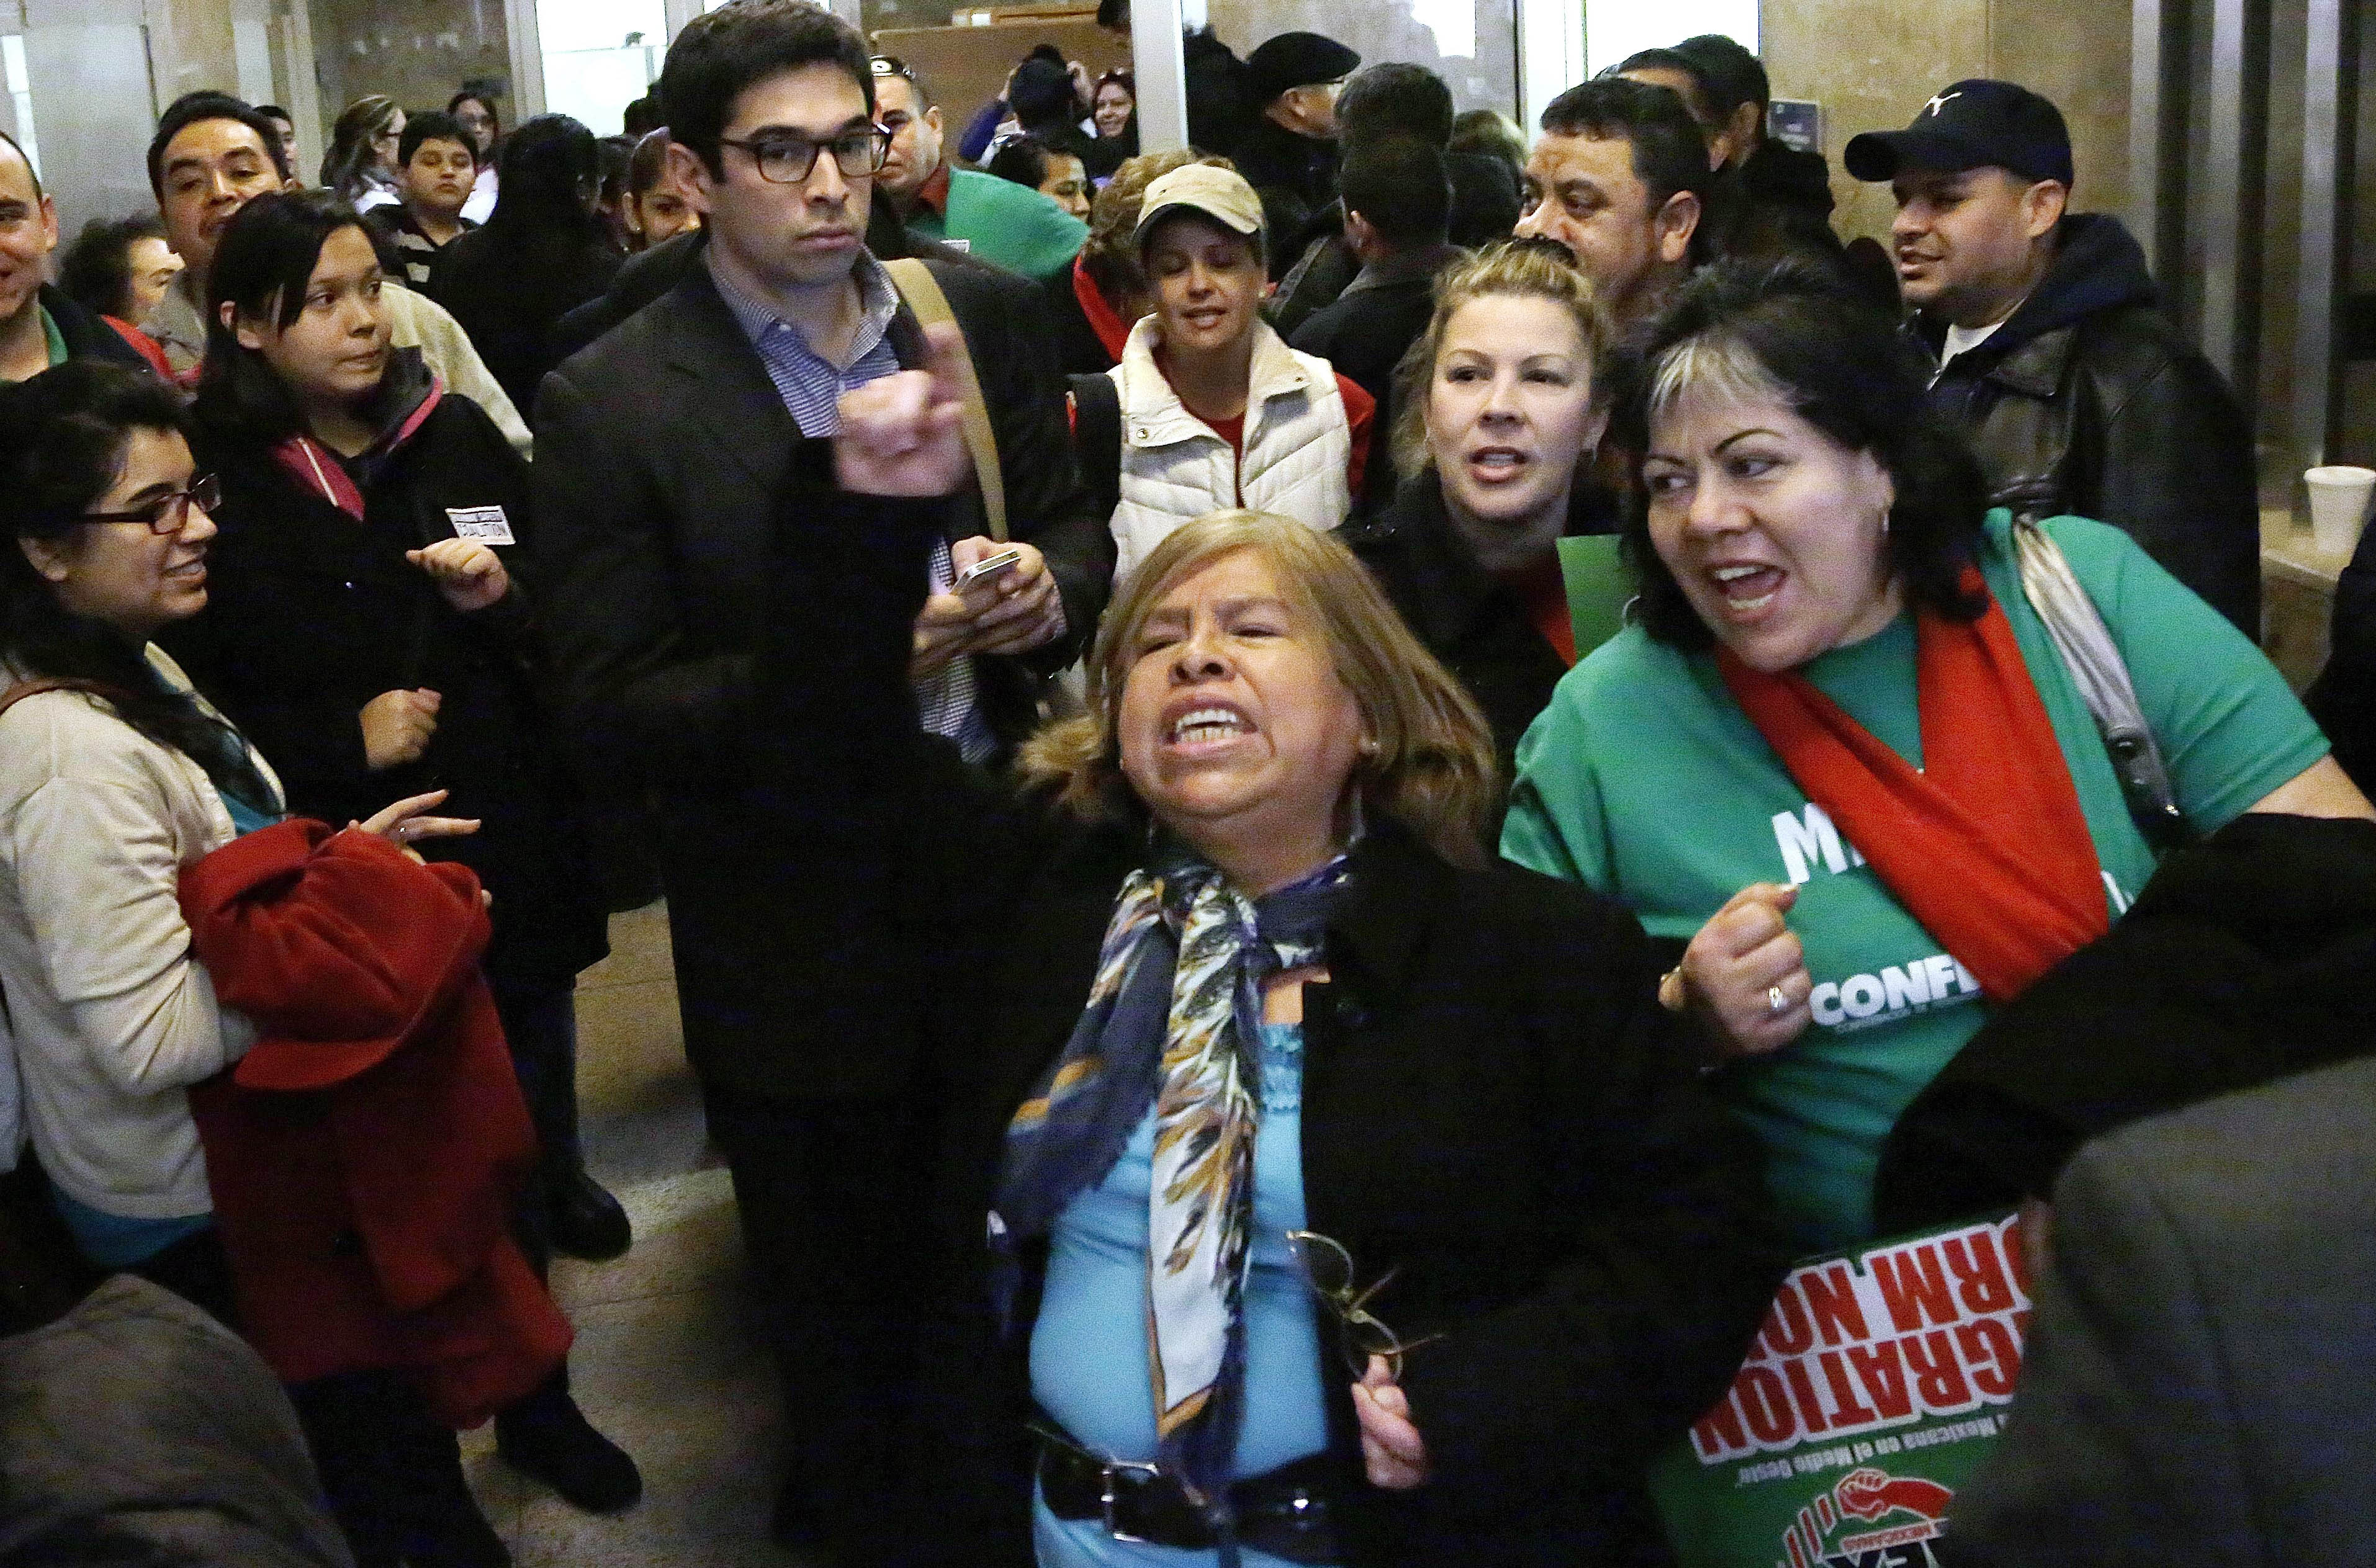 FILE - In this Jan. 7, 2013 file photo, supporters of granting illegal immigrants drivers licenses cheer after a House committee hearing at the Illinois State Capitol in Springfield. The House passed the legislation Jan. 8 and Gov. Pat Quinn is expected to sign the legislation Sunday, Jan. 27. As Illinois becomes the fourth and most populous state to issue driver's licenses to illegal immigrants, the initiative is still nagged by concerns it has enough safeguards to avoid the identity fraud and other pitfalls faced by the three other states with similar laws. (AP Photo/Seth Perlman, File)